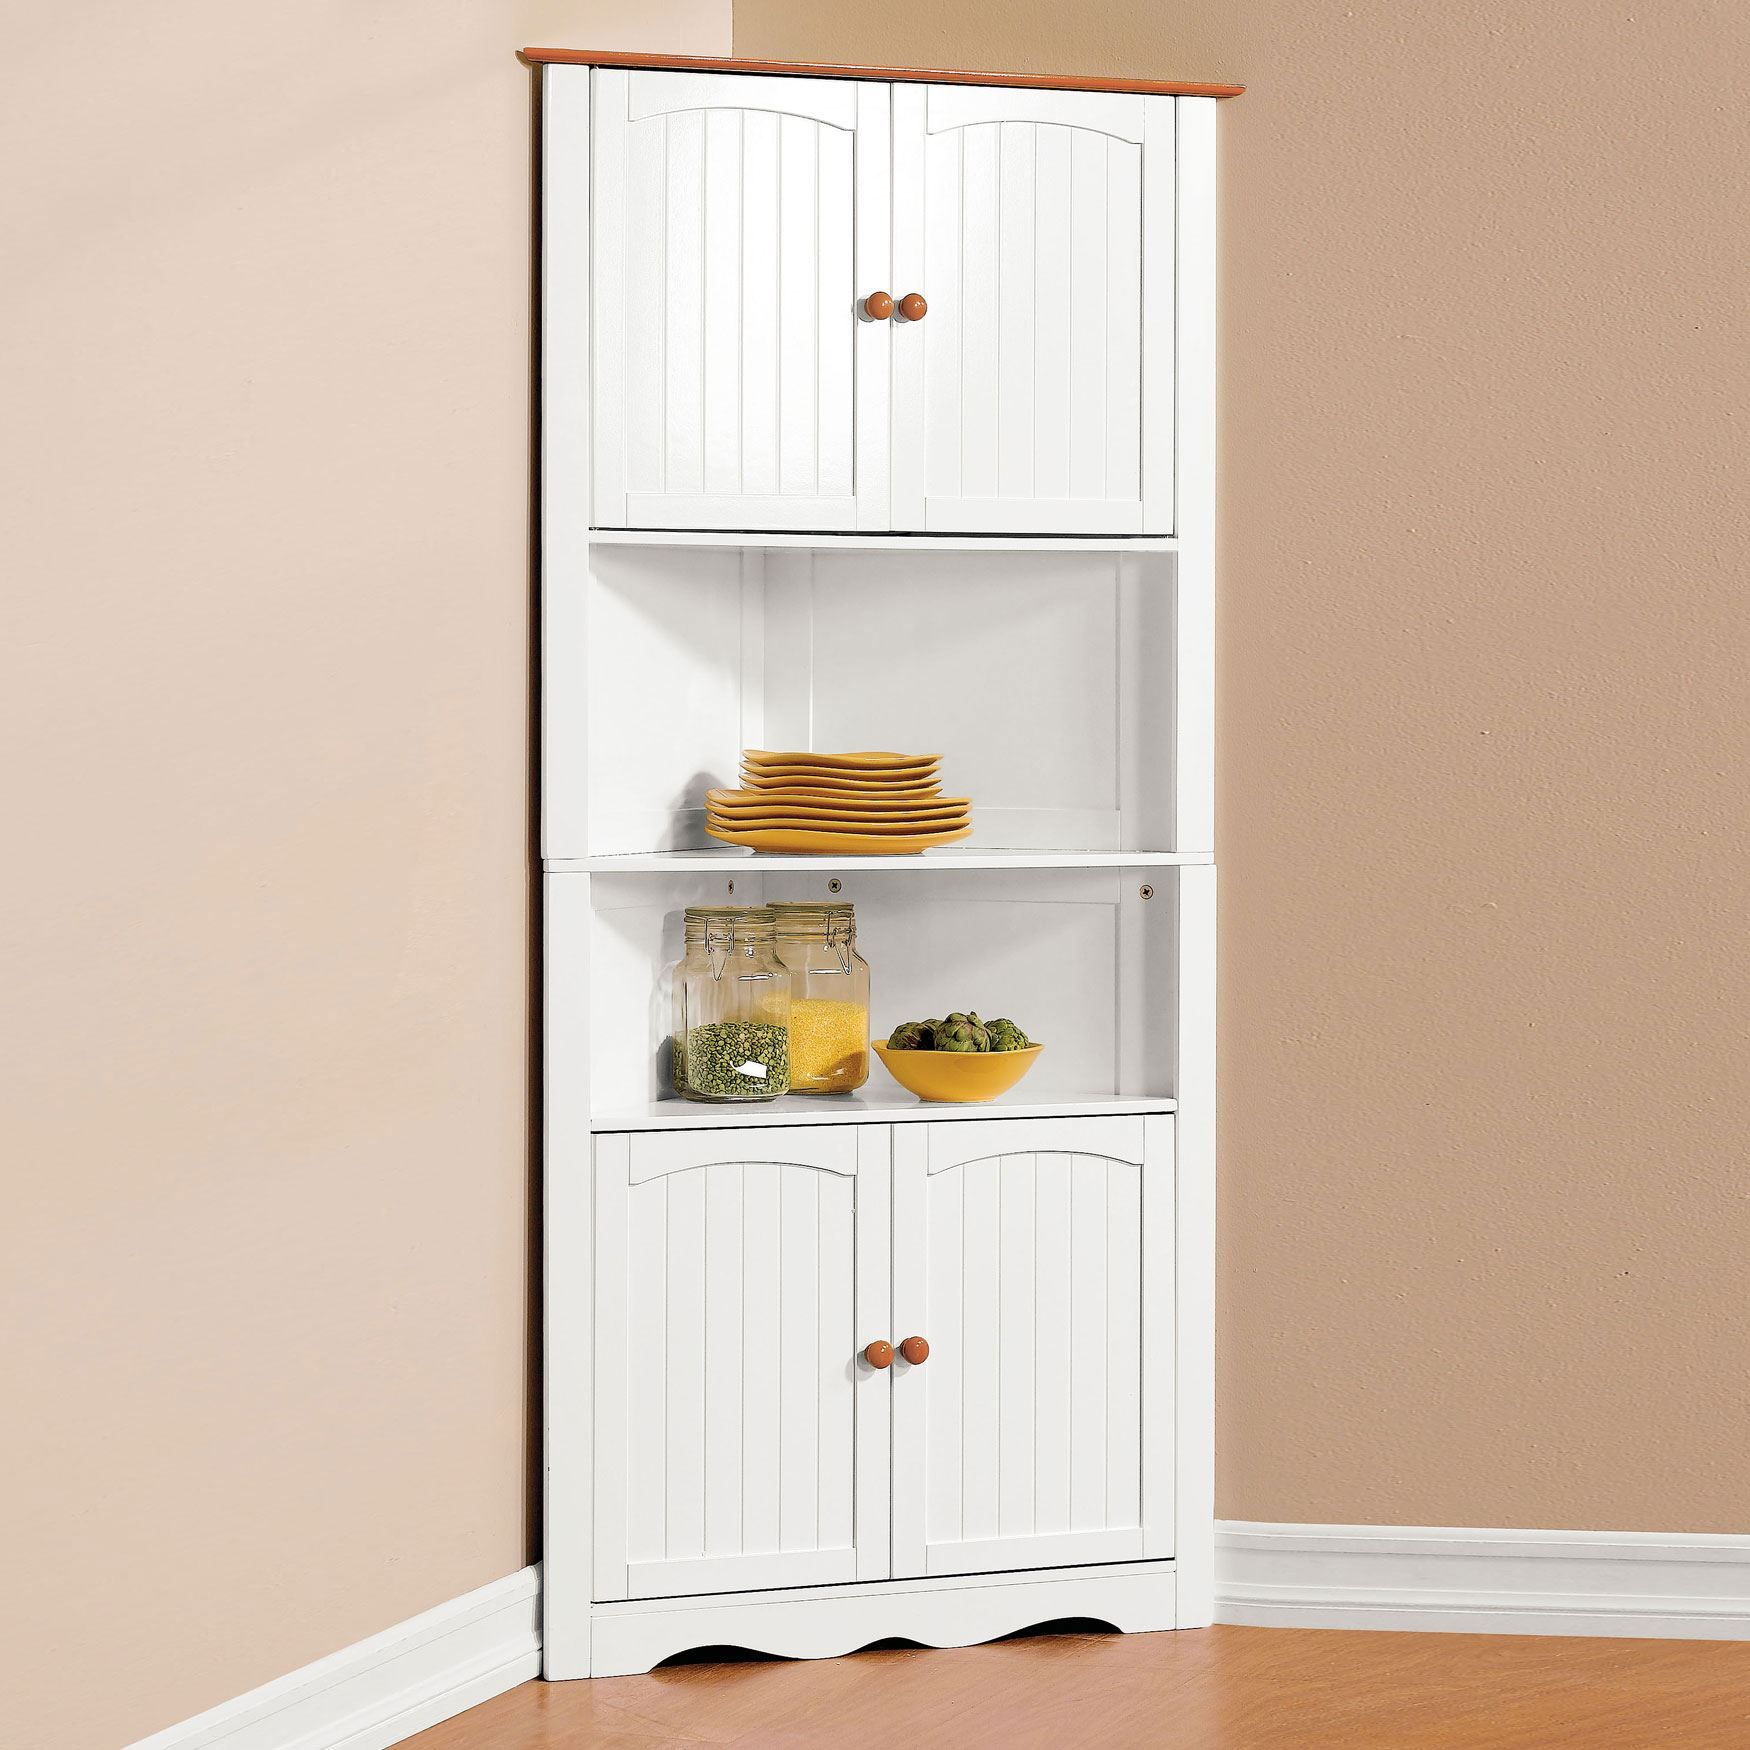 Kitchen Furniture: Carts, Cabinets, Pantries & More | BrylaneHome ...